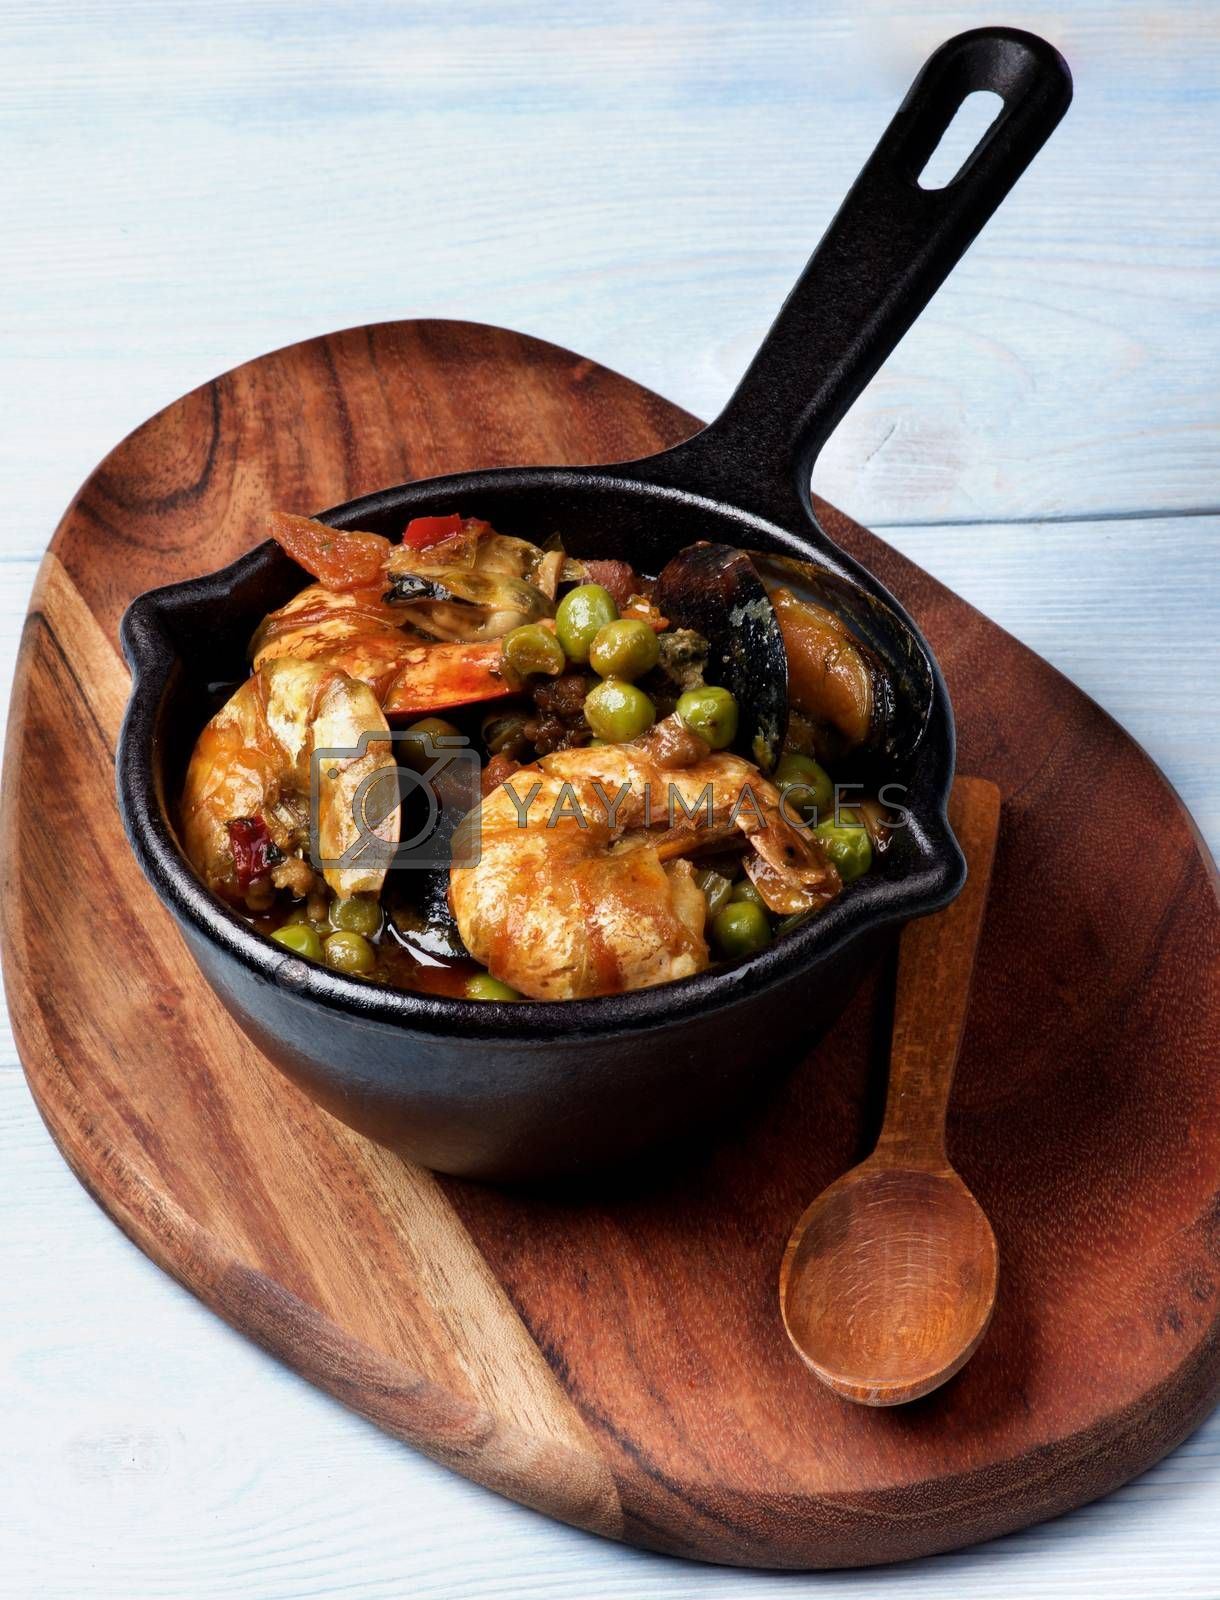 Delicious Seafood Curry with Prawns, White Fish, Mussels and Vegetables in Black Iron Cast Pot with Wooden Spoon closeup on Serving Board